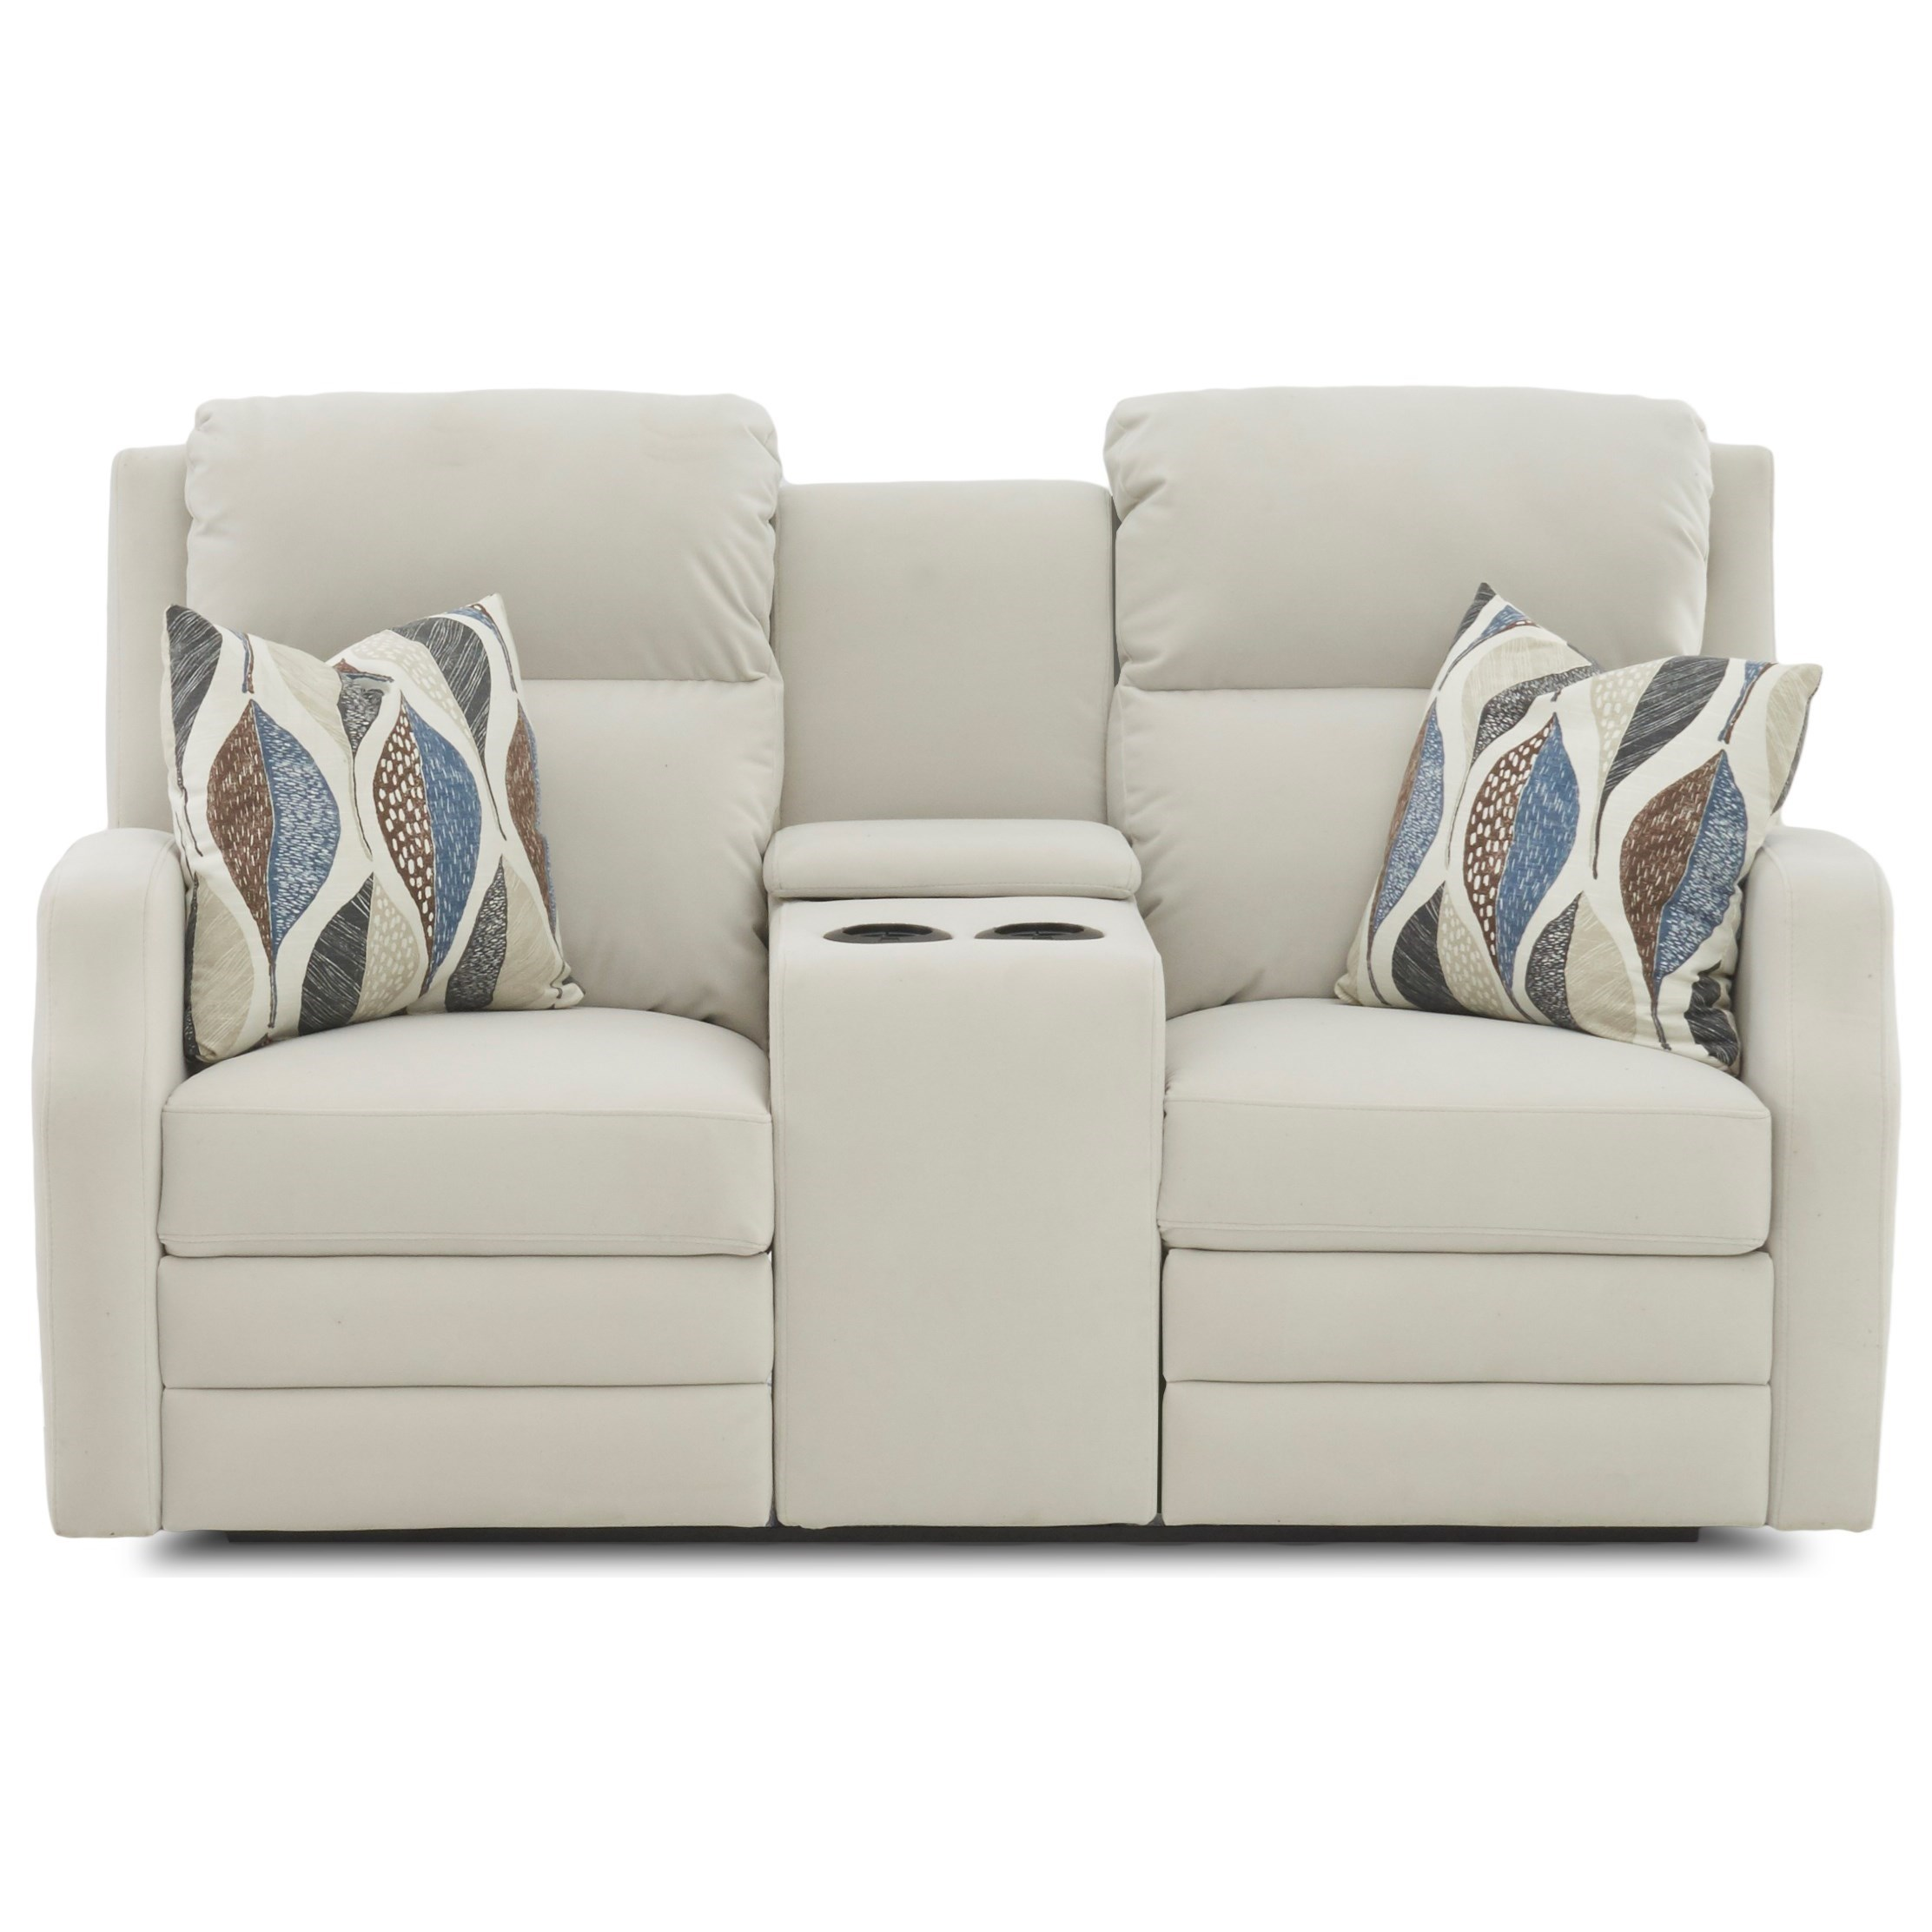 Kamiah Pwr Console Recl Love w/ Pillows Pwr Head by Klaussner at Catalog Outlet